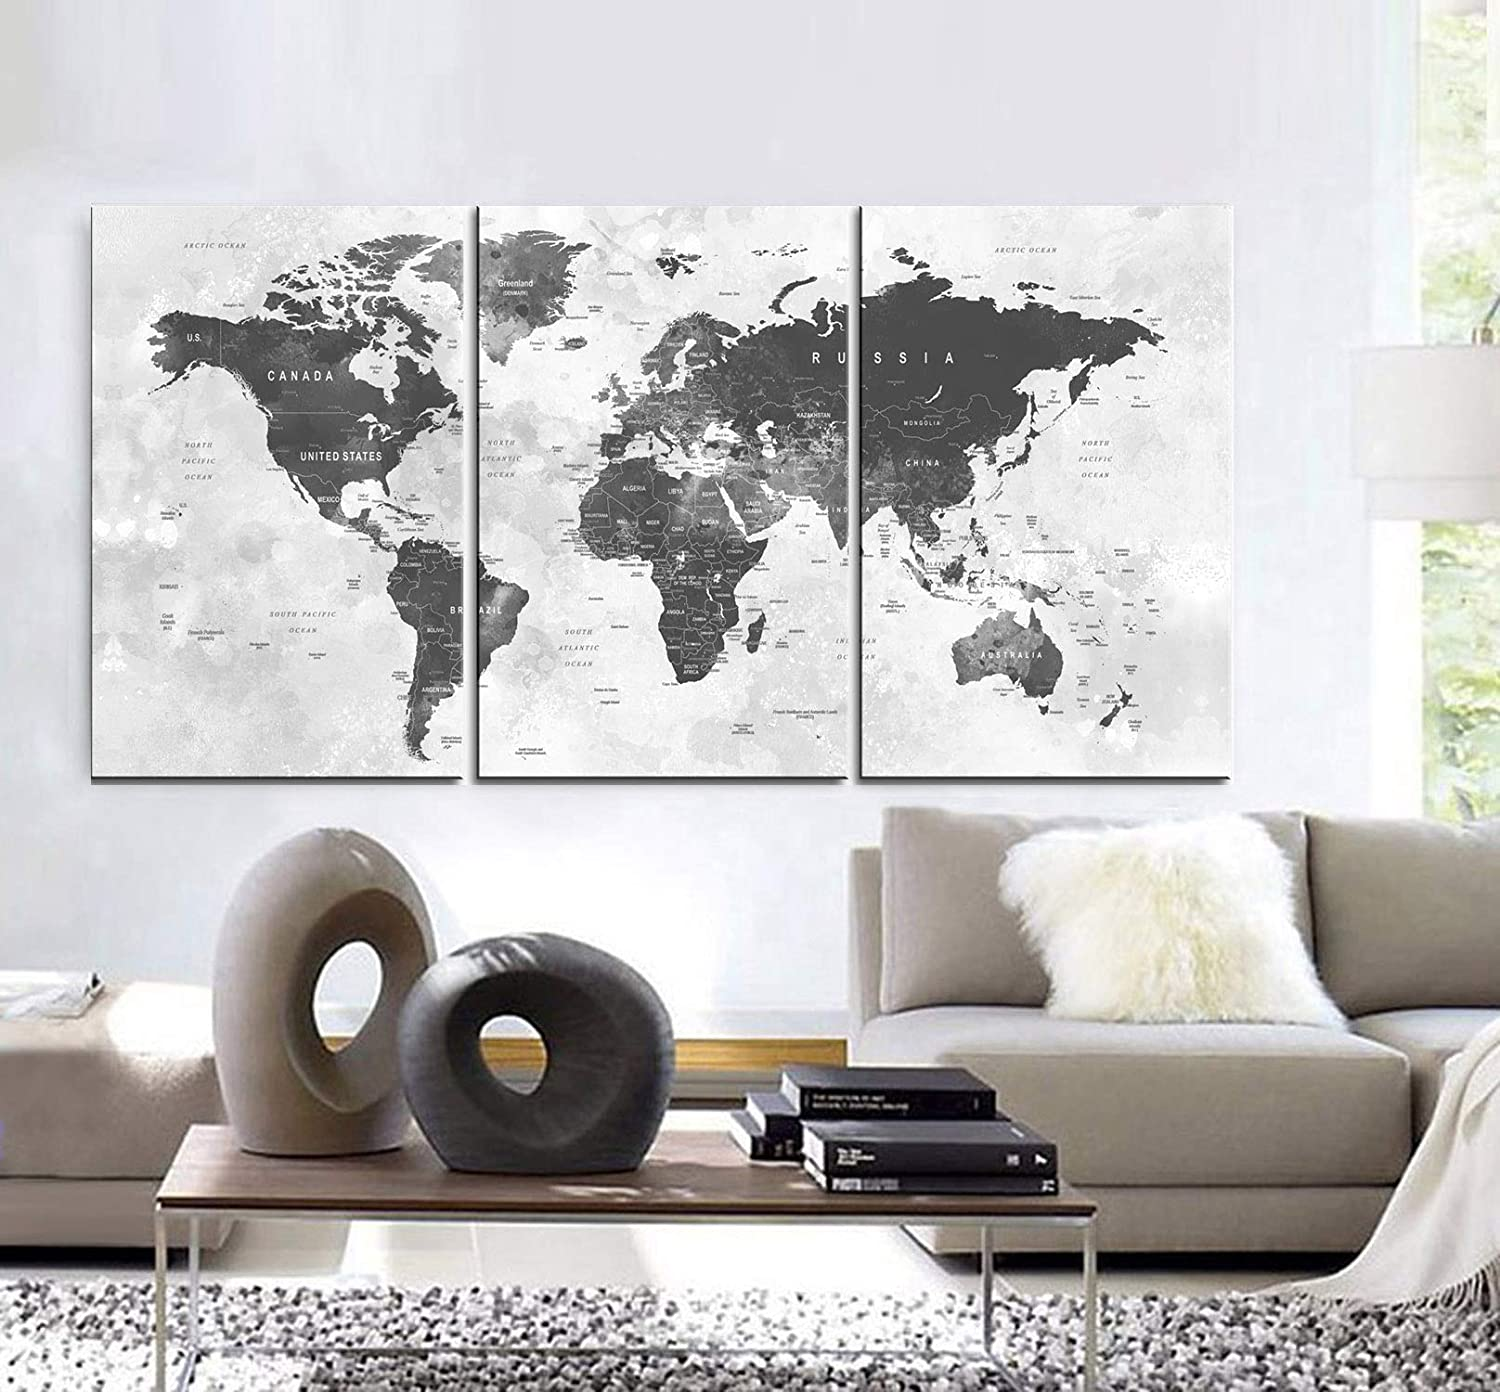 Amazon Com Original By Boxcolors Large 30 X 60 3 Panels 30x20 Ea Art Canvas Print World Map Watercolor Push Pin Gray Wall Decor Home Interior Included Framed 1 5 Depth Handmade